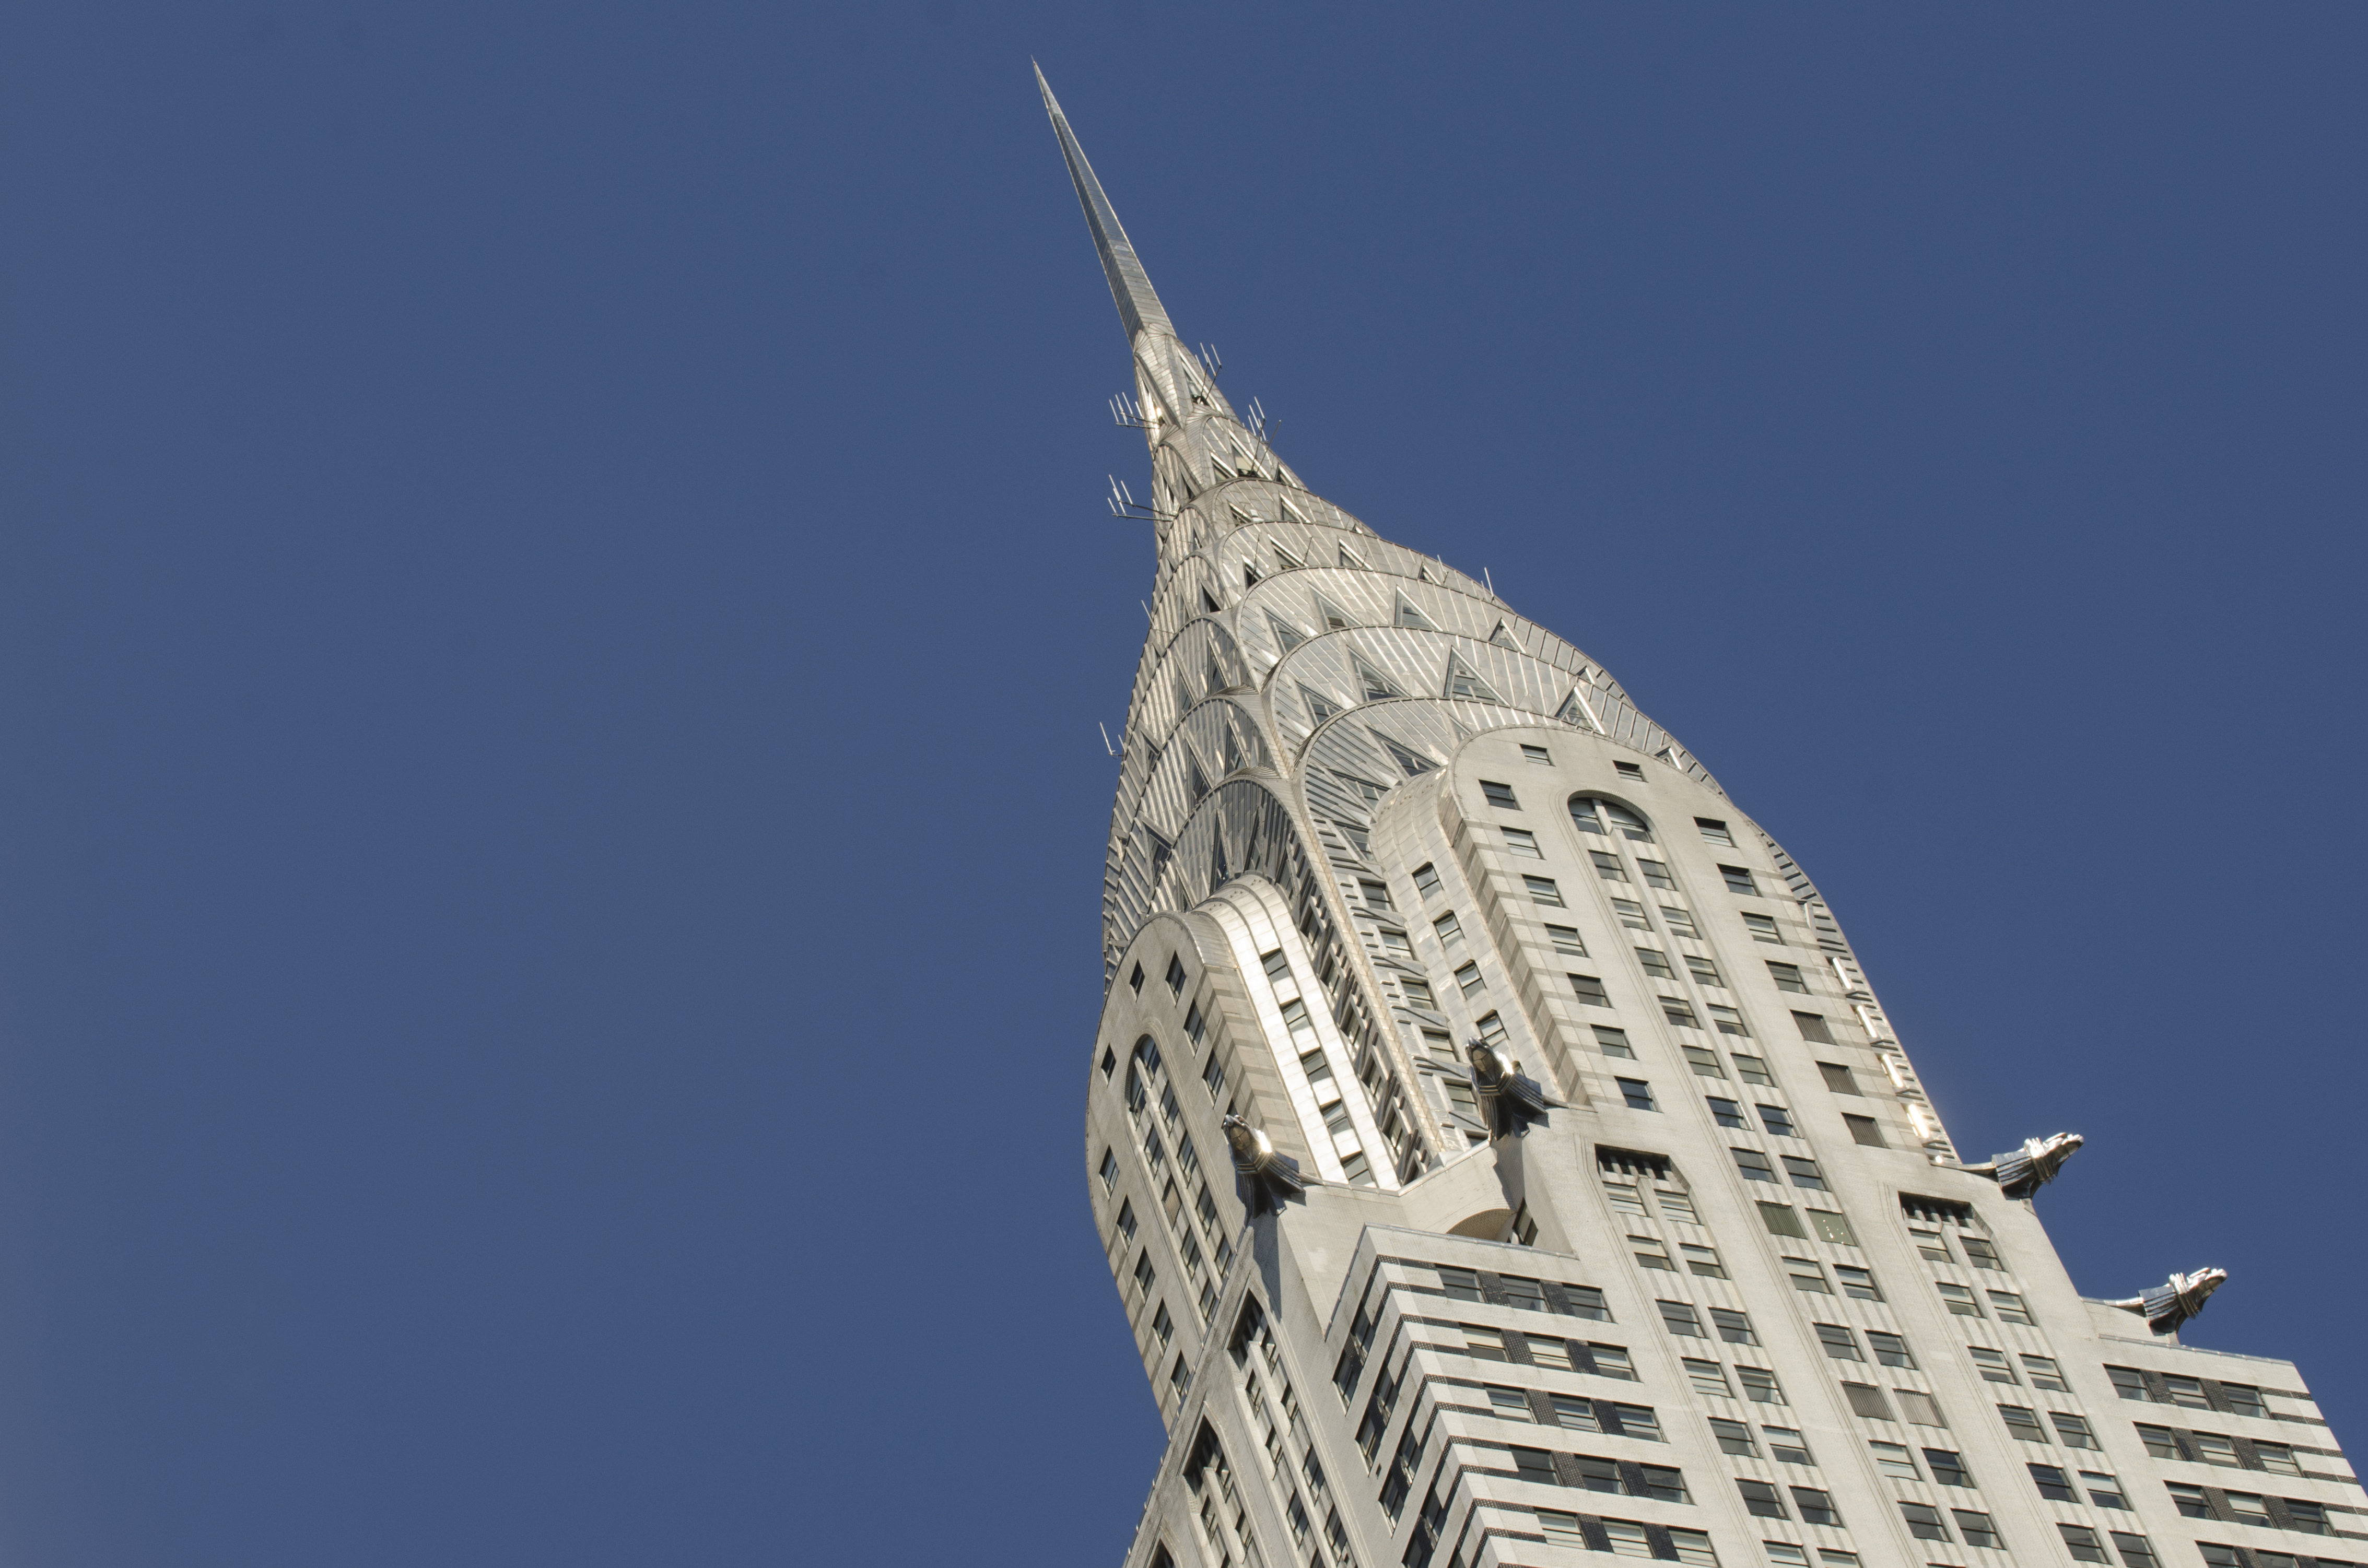 Pictures Of The Chrysler Building In New York City